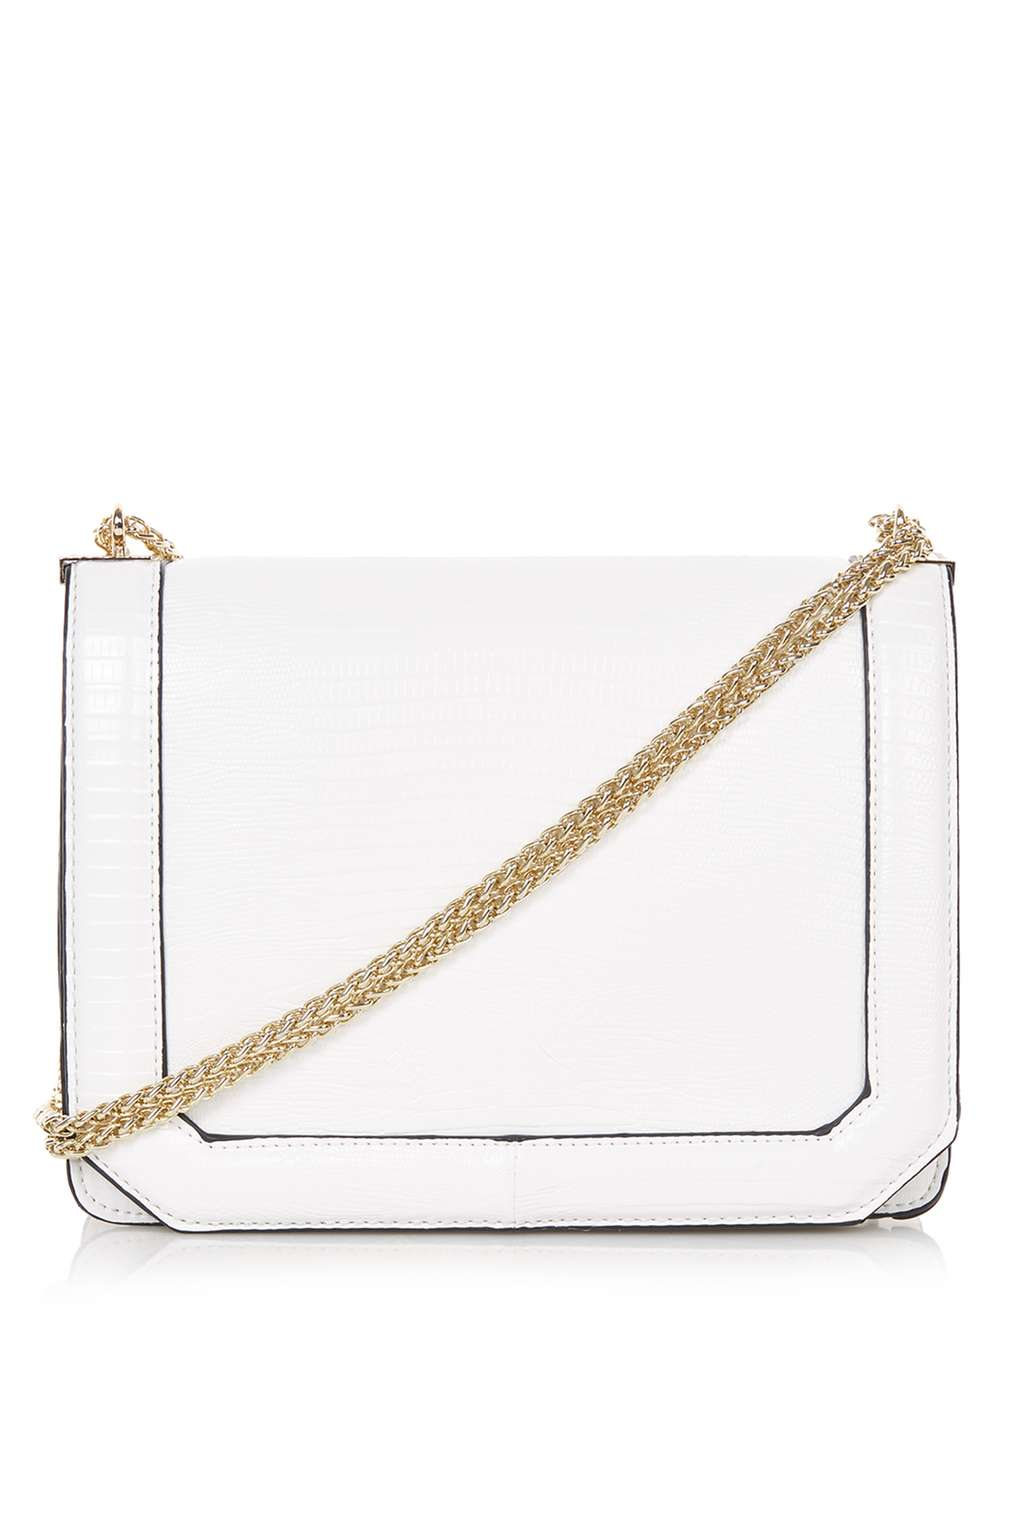 39fdfa46945 TOPSHOP Smart Chain Strap Crossbody Bag in White - Lyst